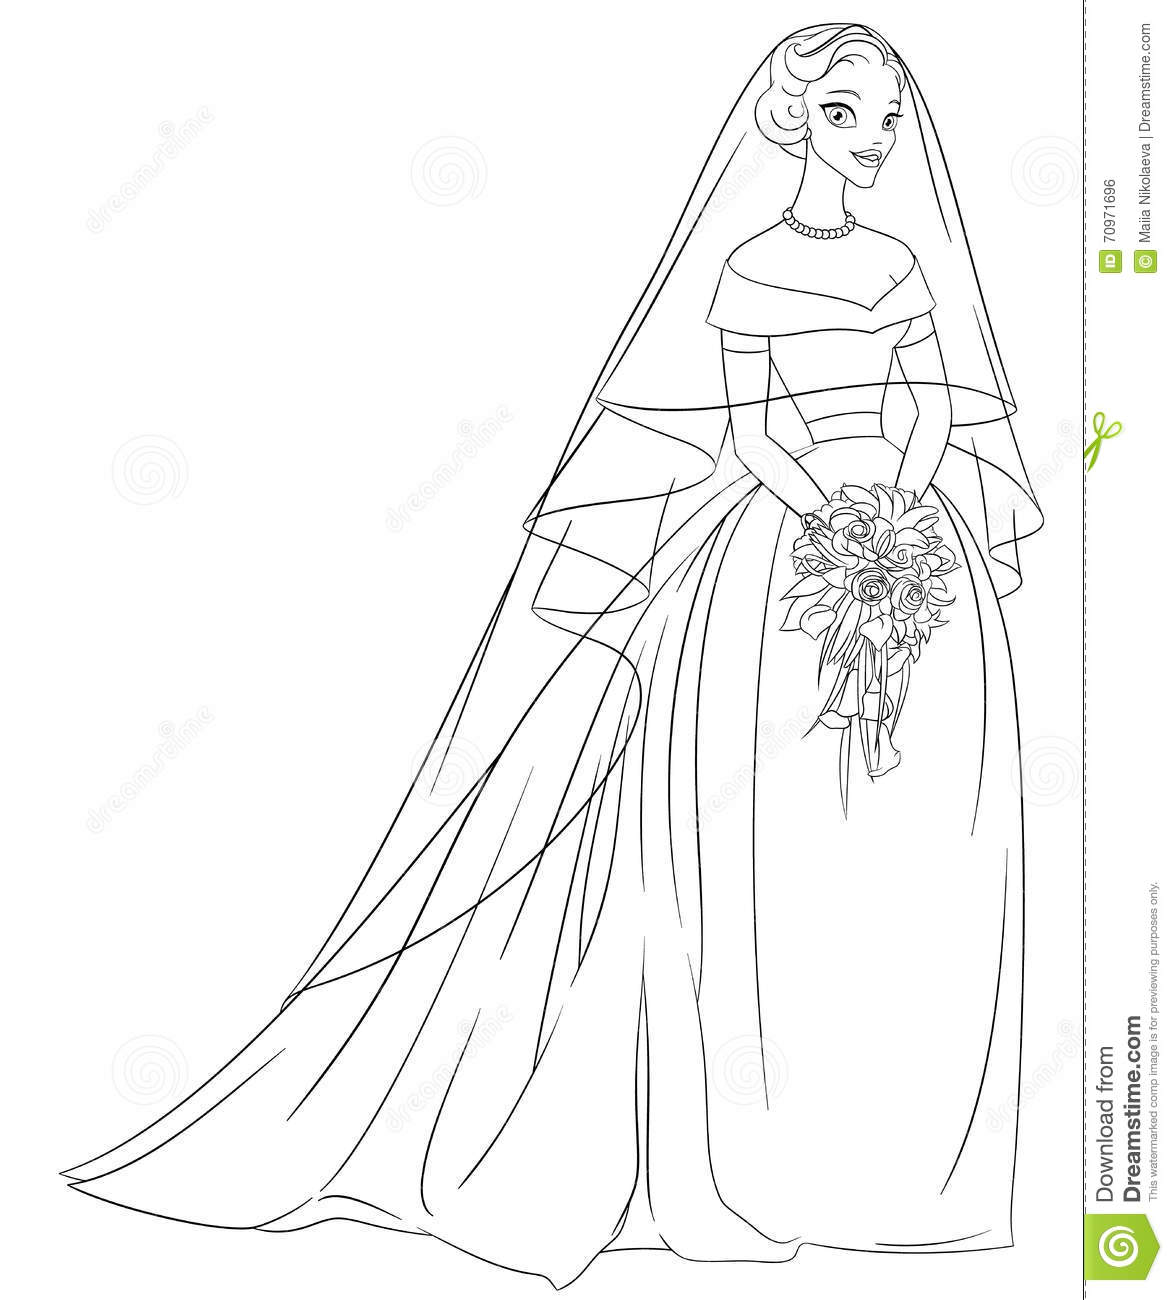 Outlined Bride With Veil And Bouquet. Line Art Coloring Page ...